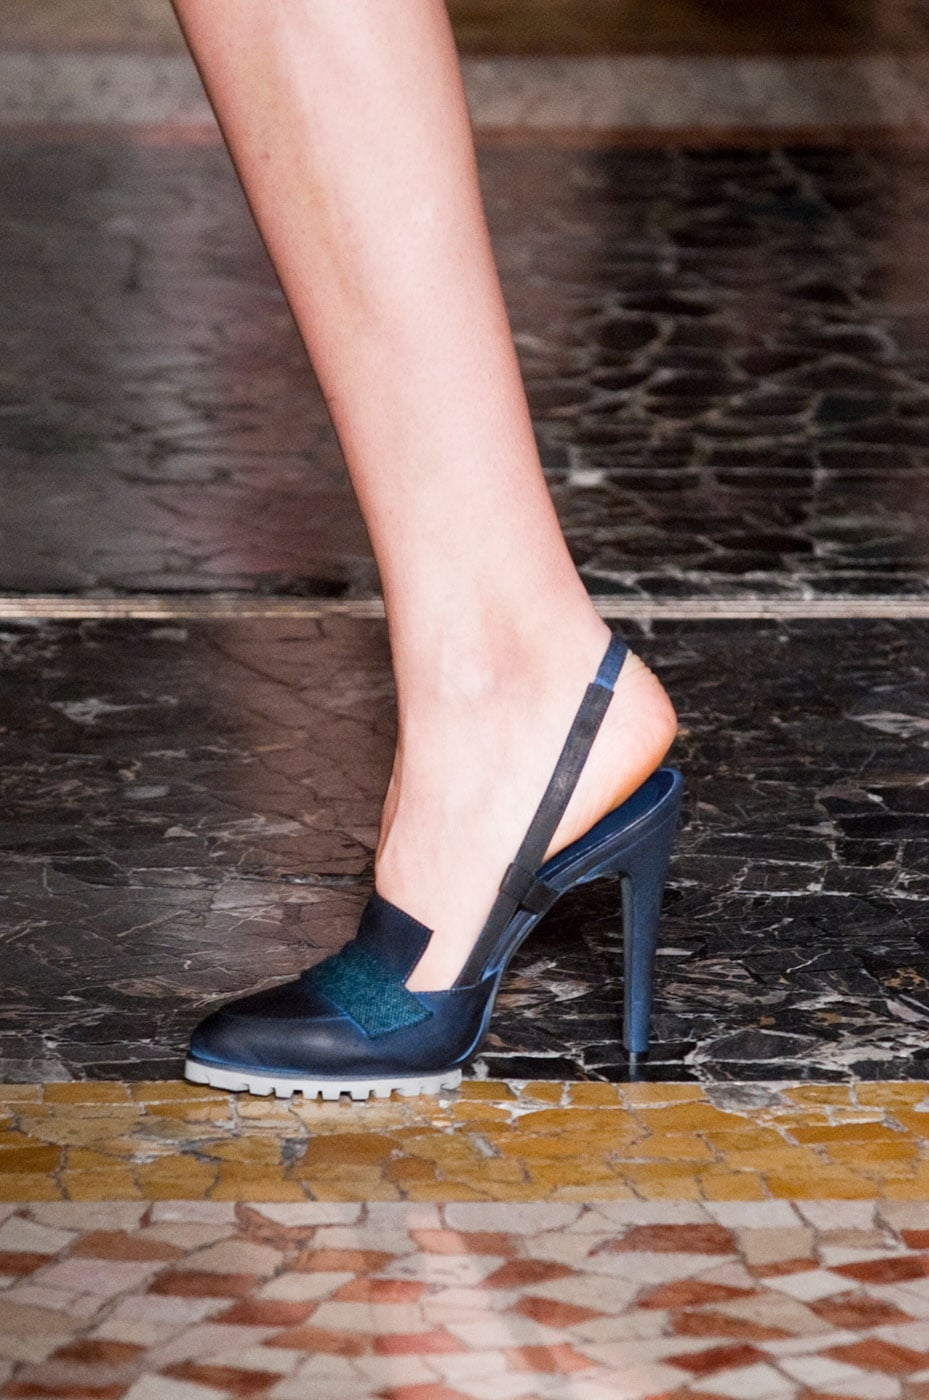 Chicca Lualdi BeeQueen Fall 2014